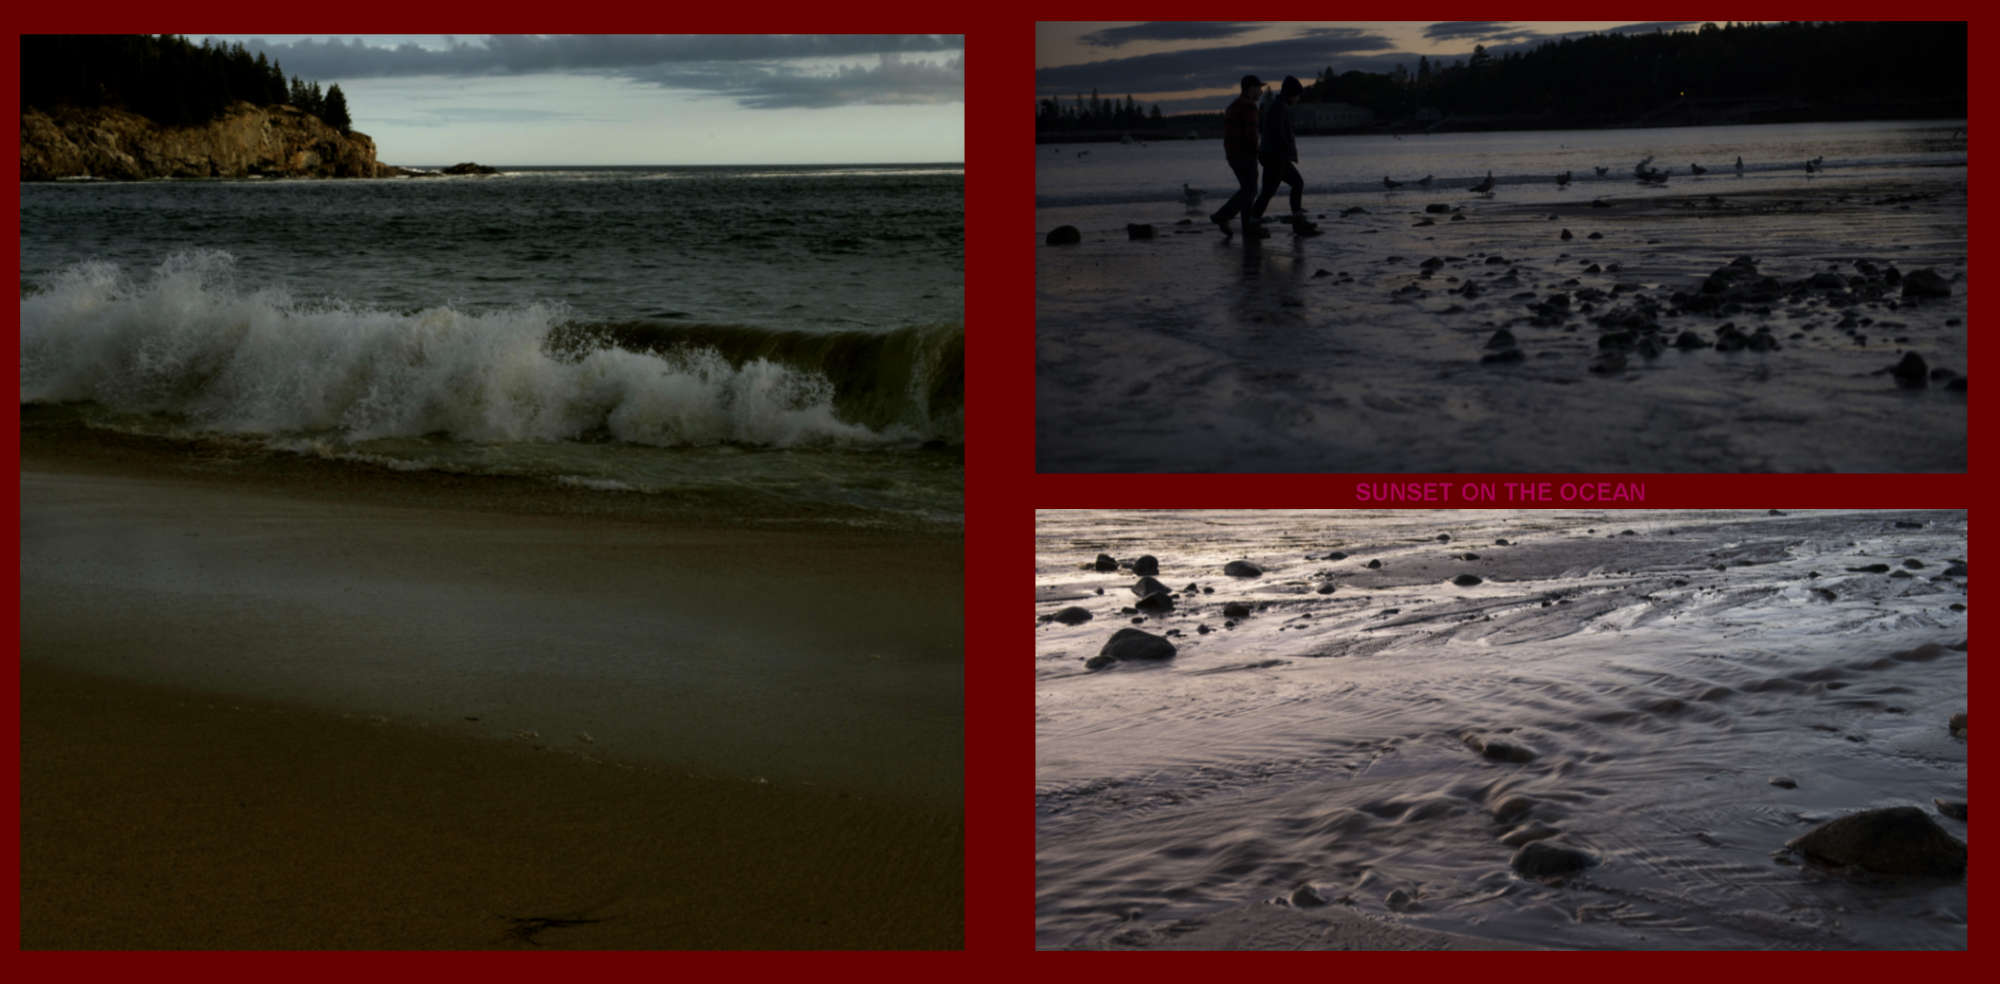 Fall in New-England Album - Pages 14-15 - Sunset and waves